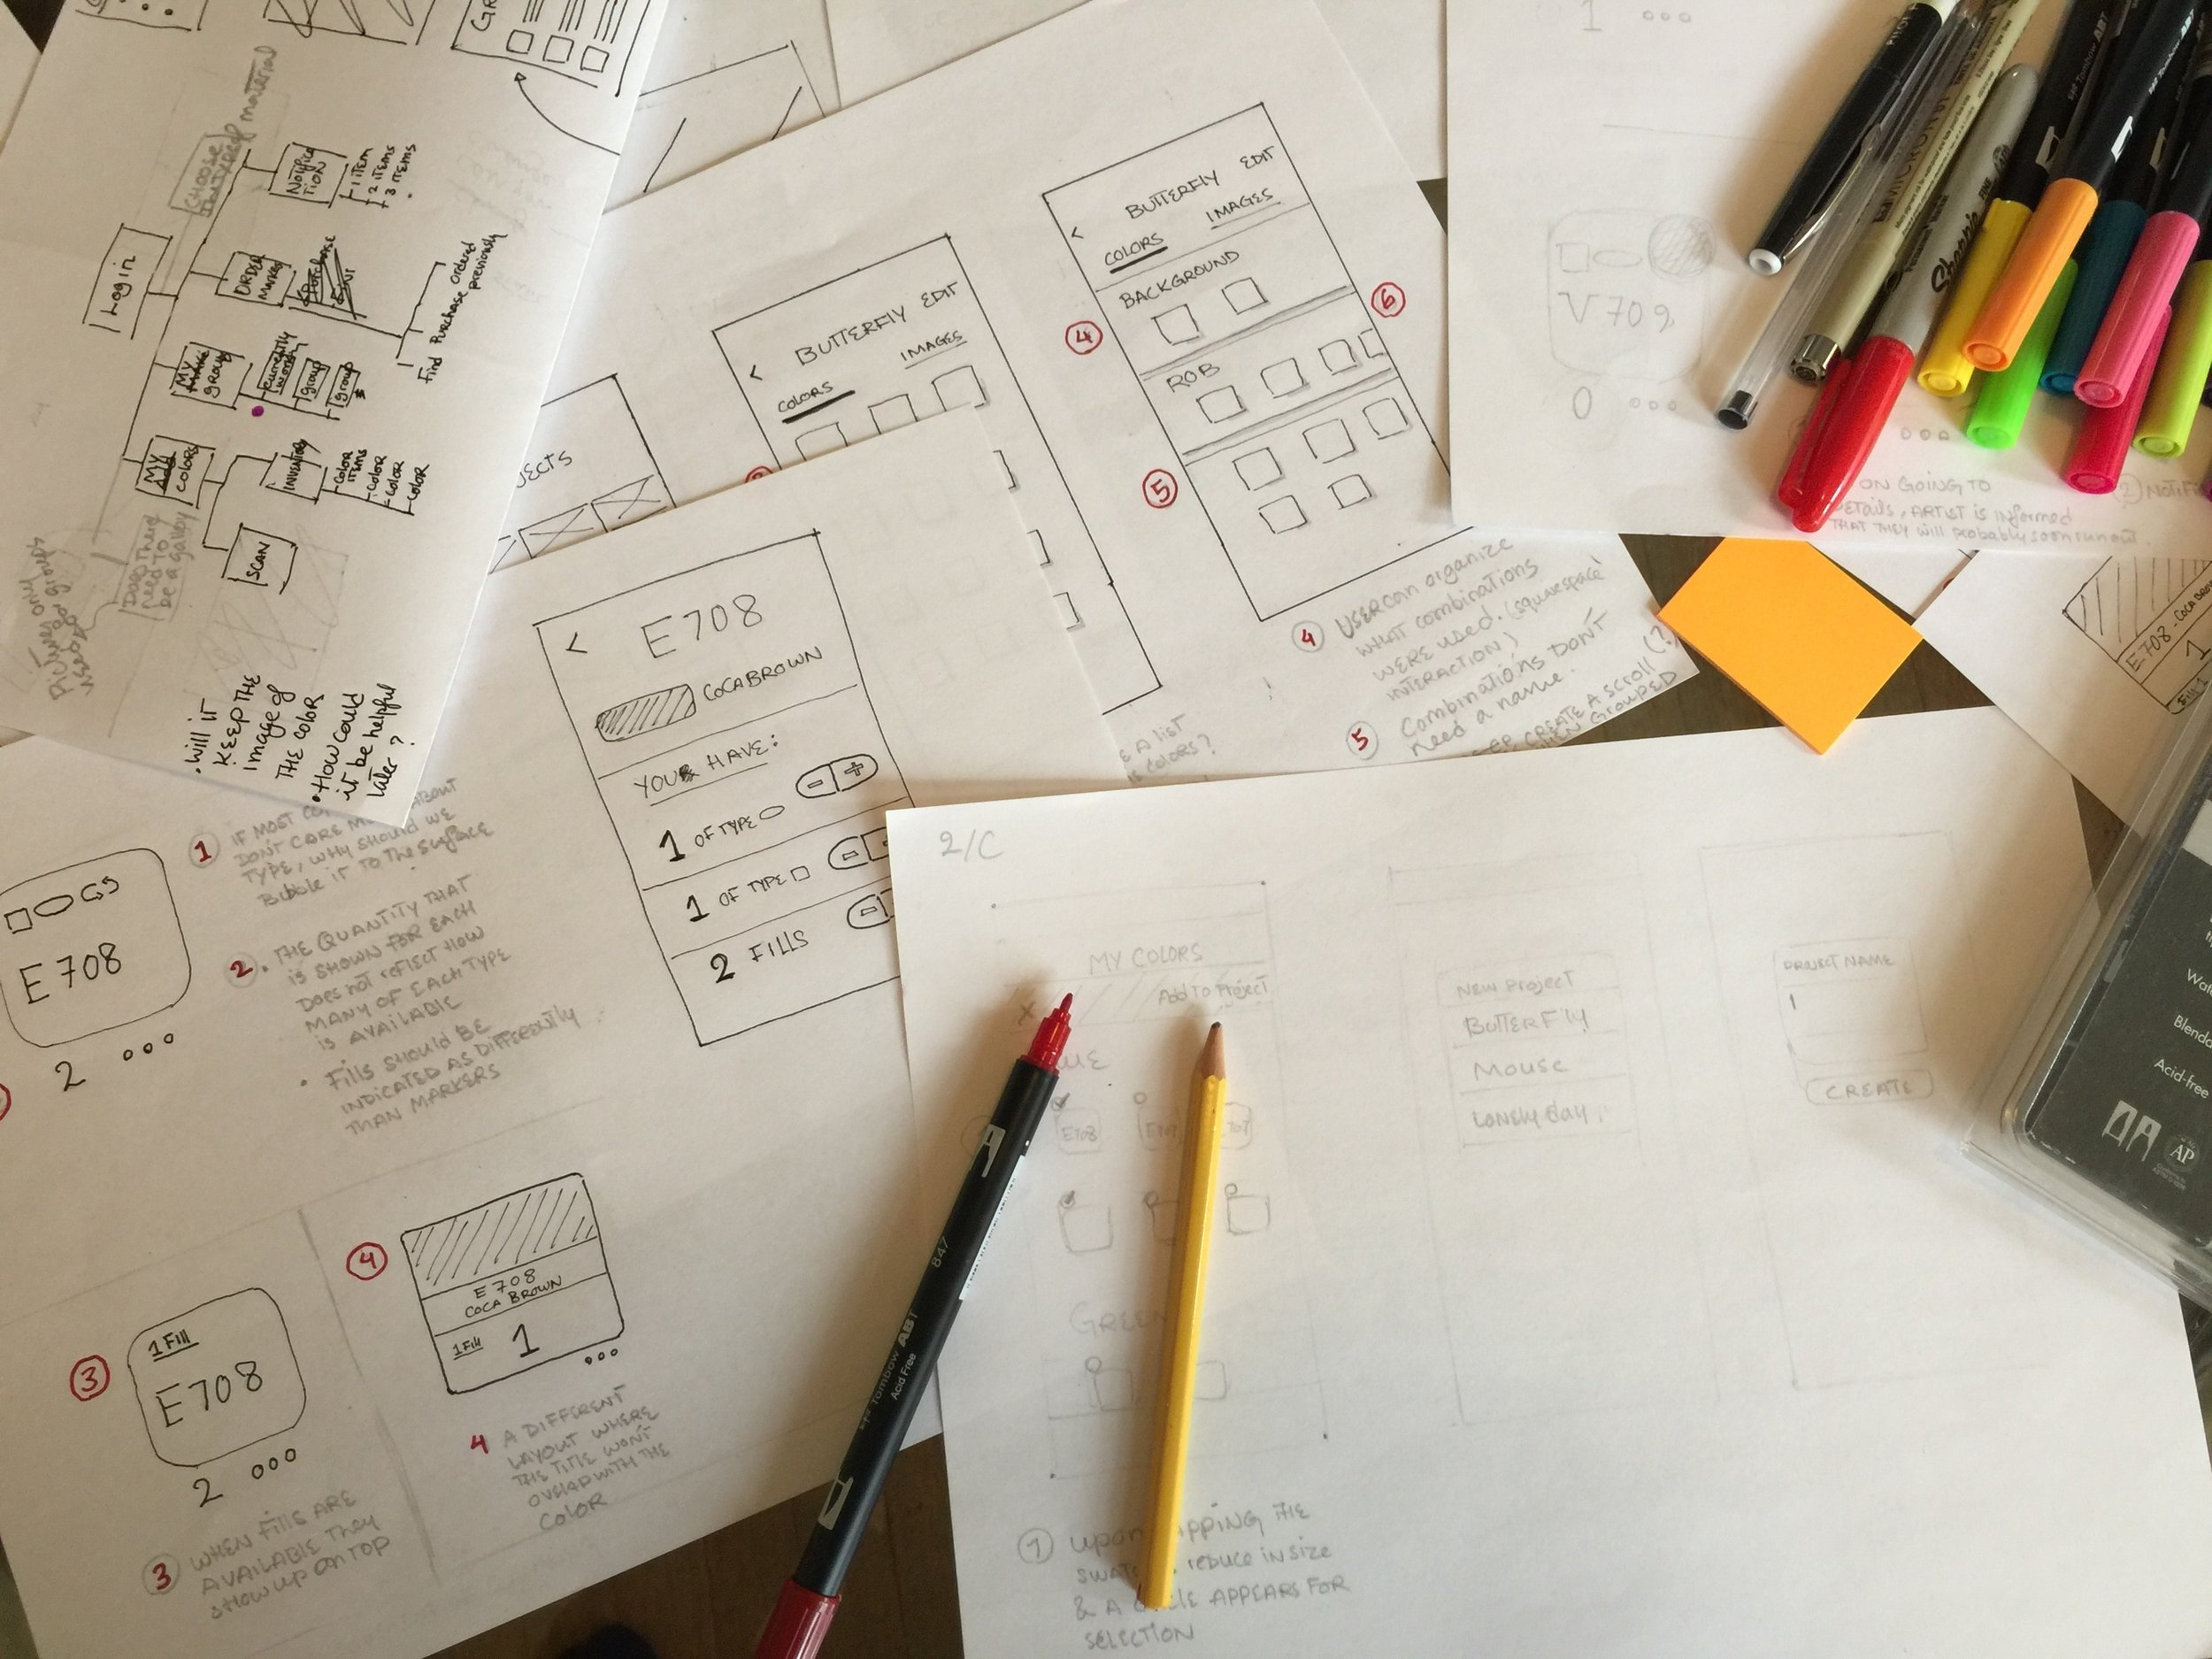 Low-fi sketches of the major user stories.